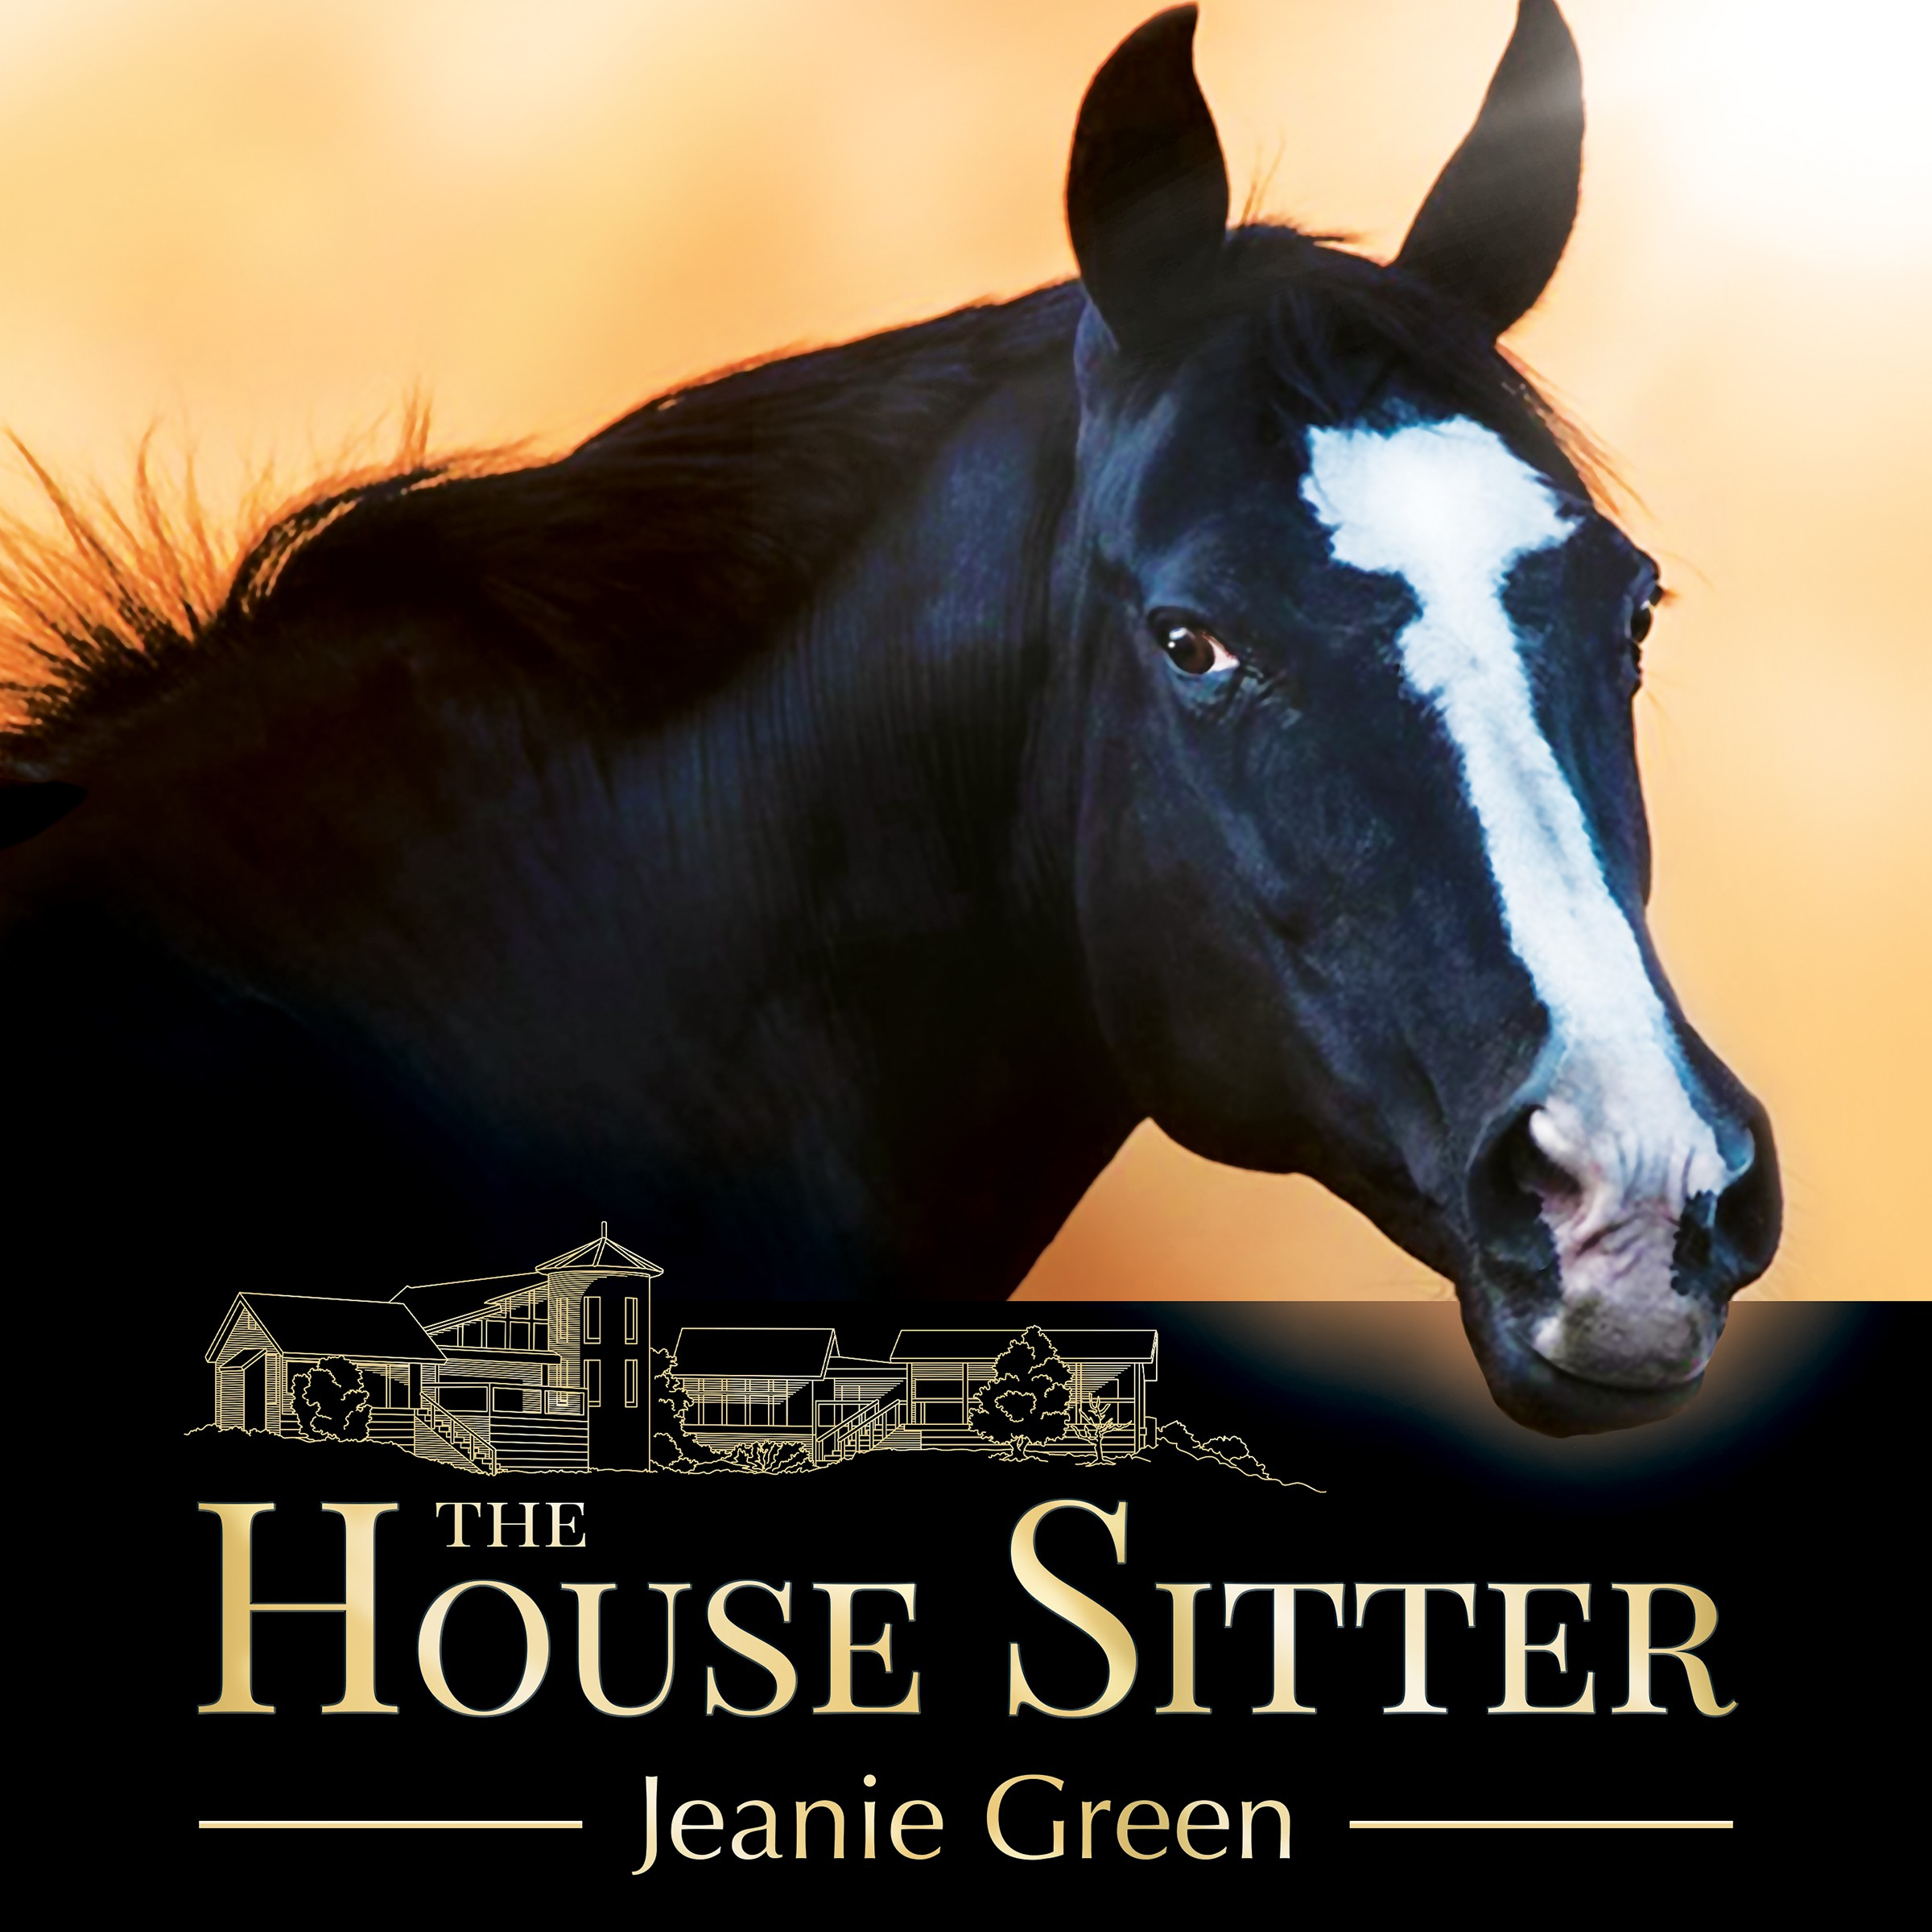 The House Sitter - Files for eBook, Audiobook and Hardback